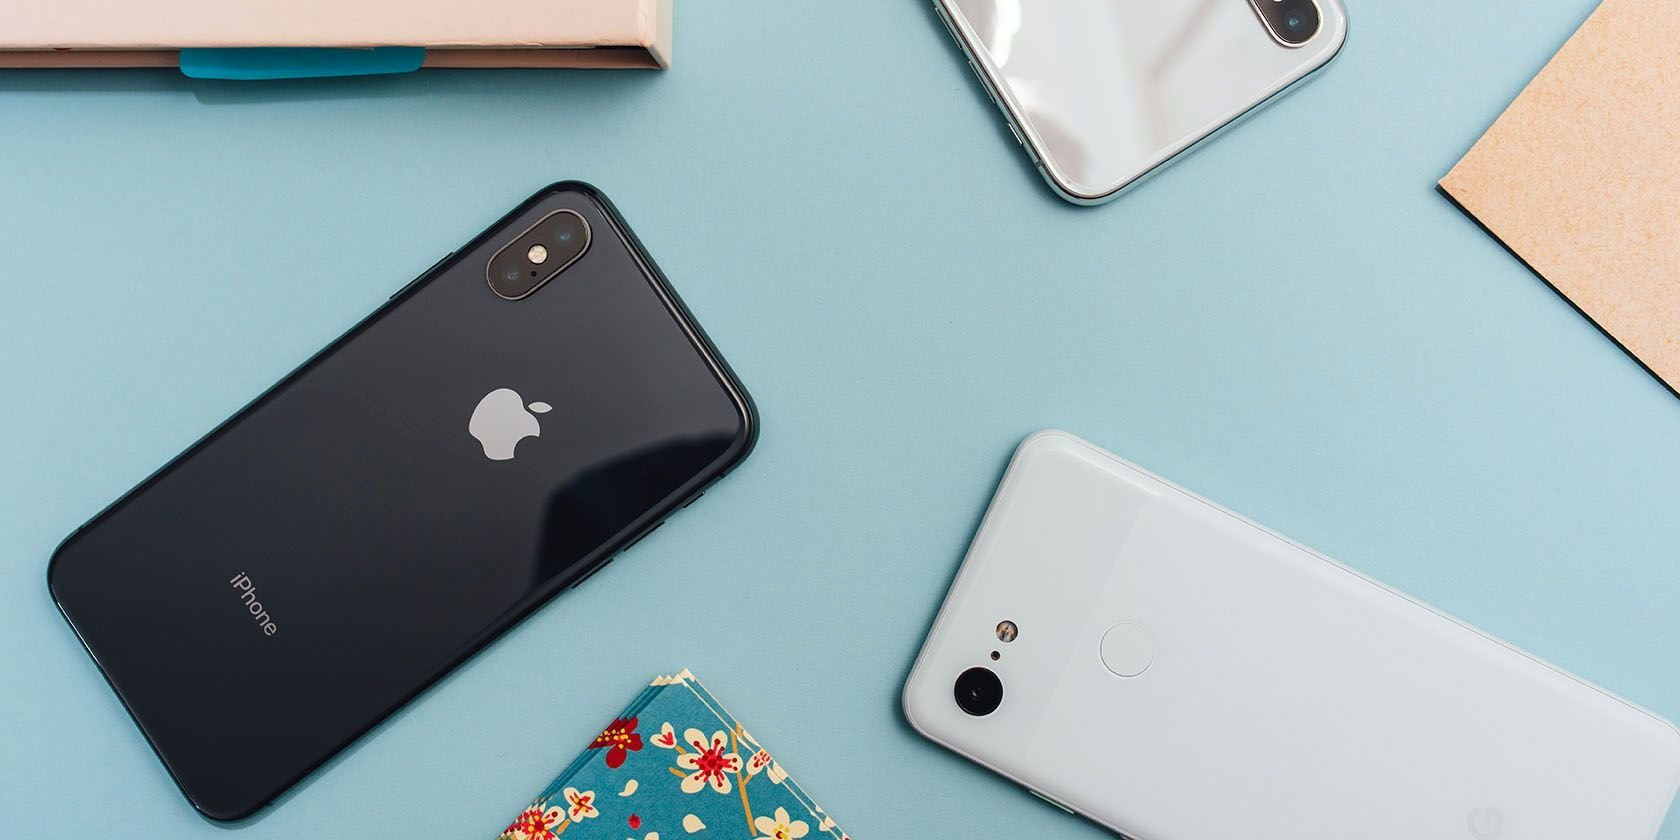 9 iOS 15 Features We're Seriously Excited About